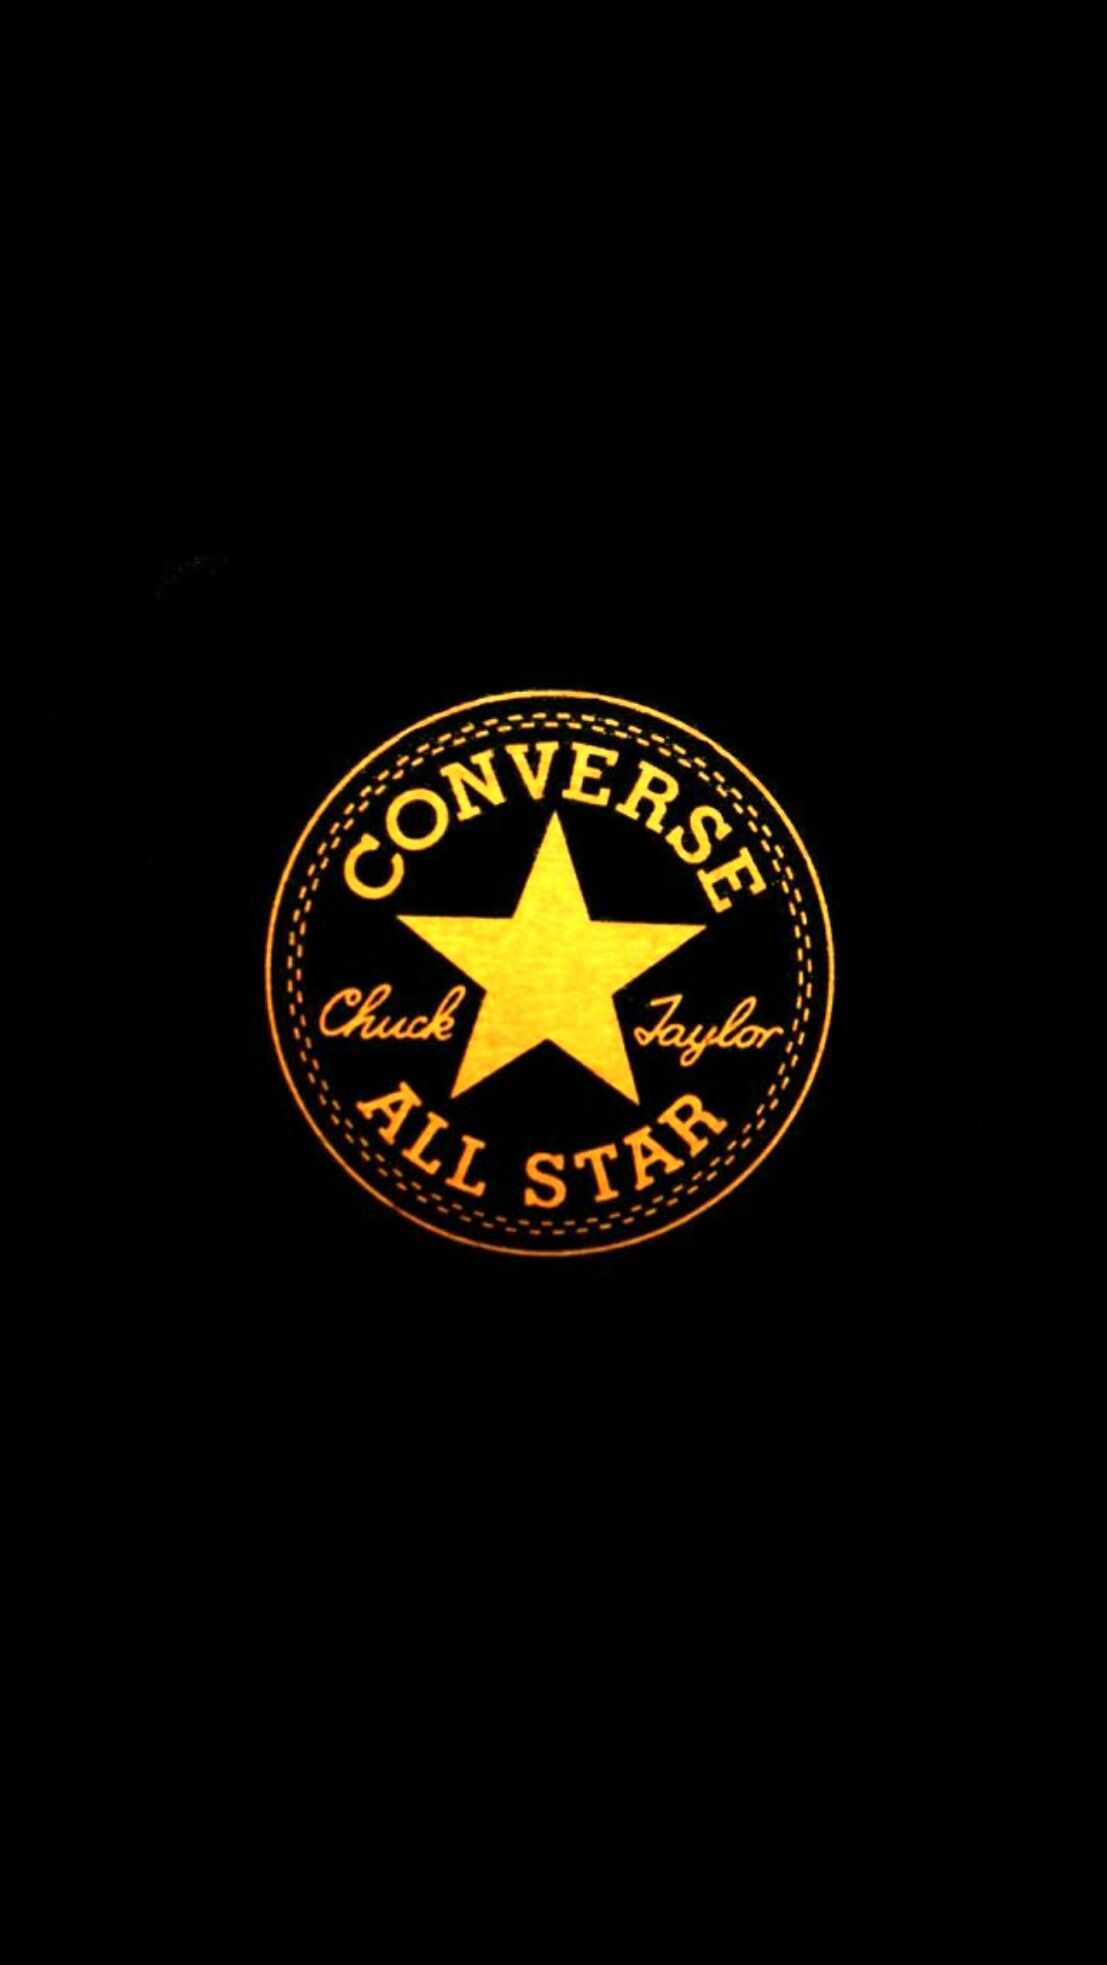 #converse #black  #wallpaper  #iPhone  #android from i.pinimg.com